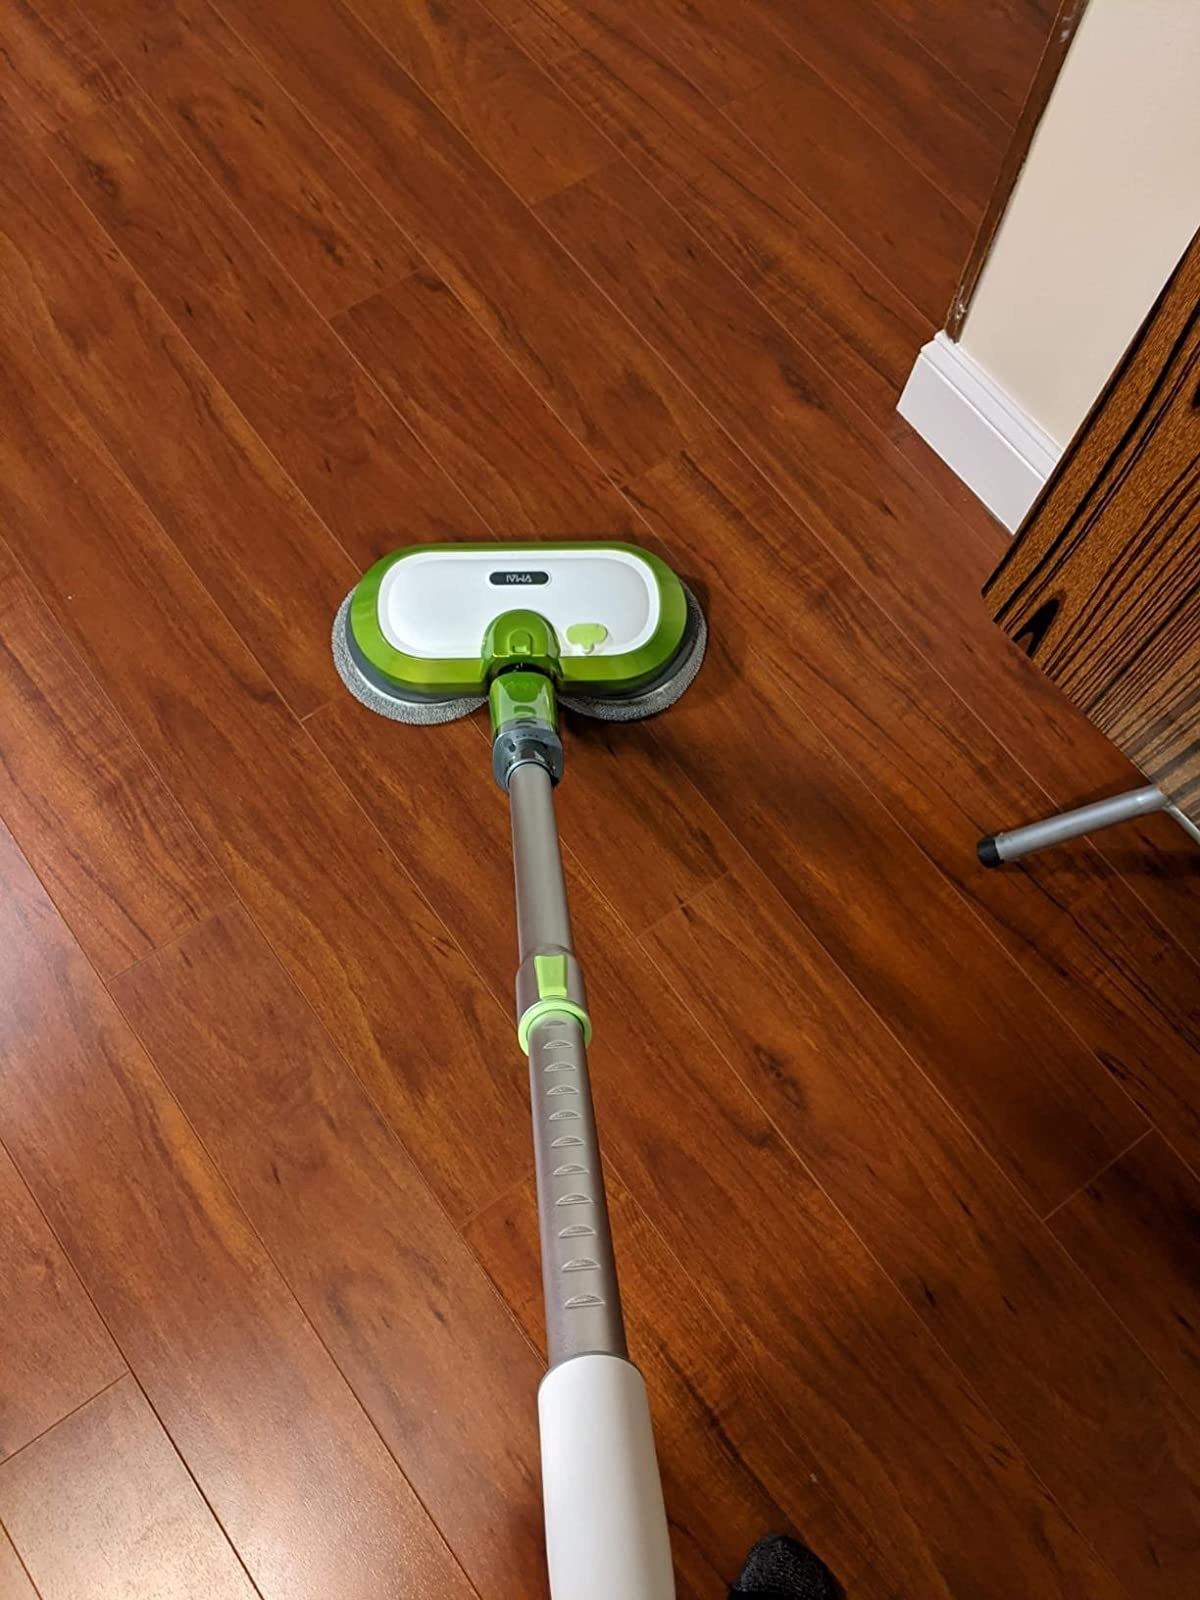 reviewer image of the vmai cordless electric mop cleaning hardwood floors